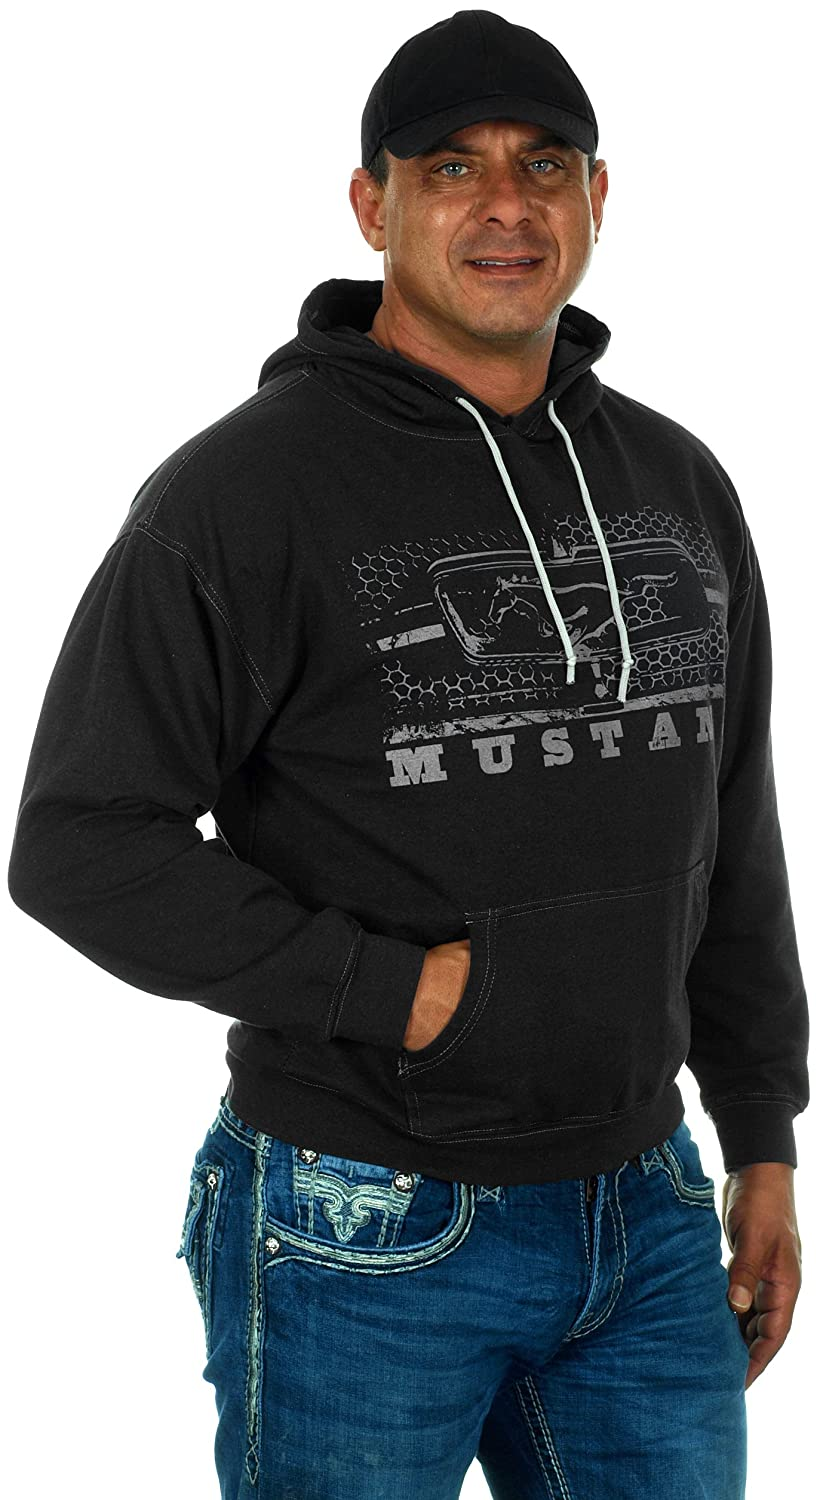 JH Design Mens Ford Mustang Hoodies in 5 Styles with American Flag Sticker